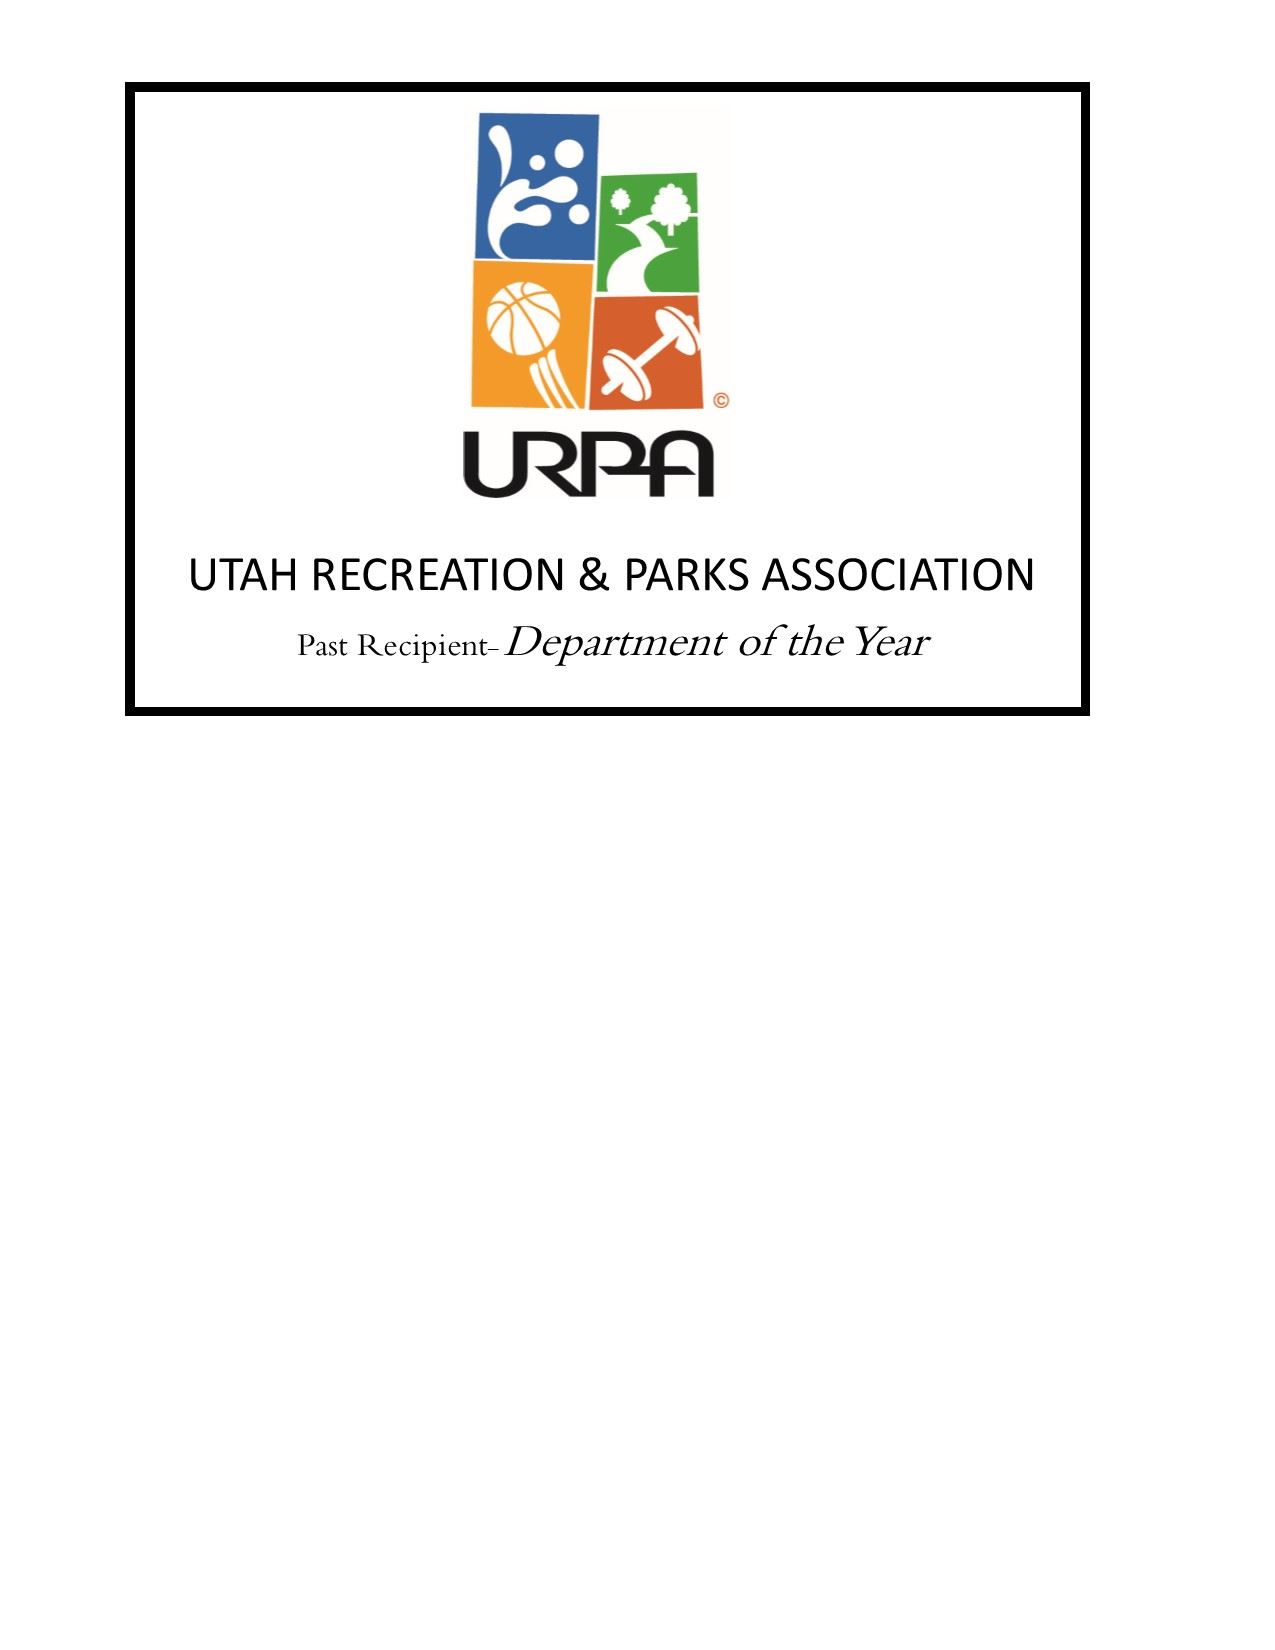 URPA PAST RECIPIENT AWARD